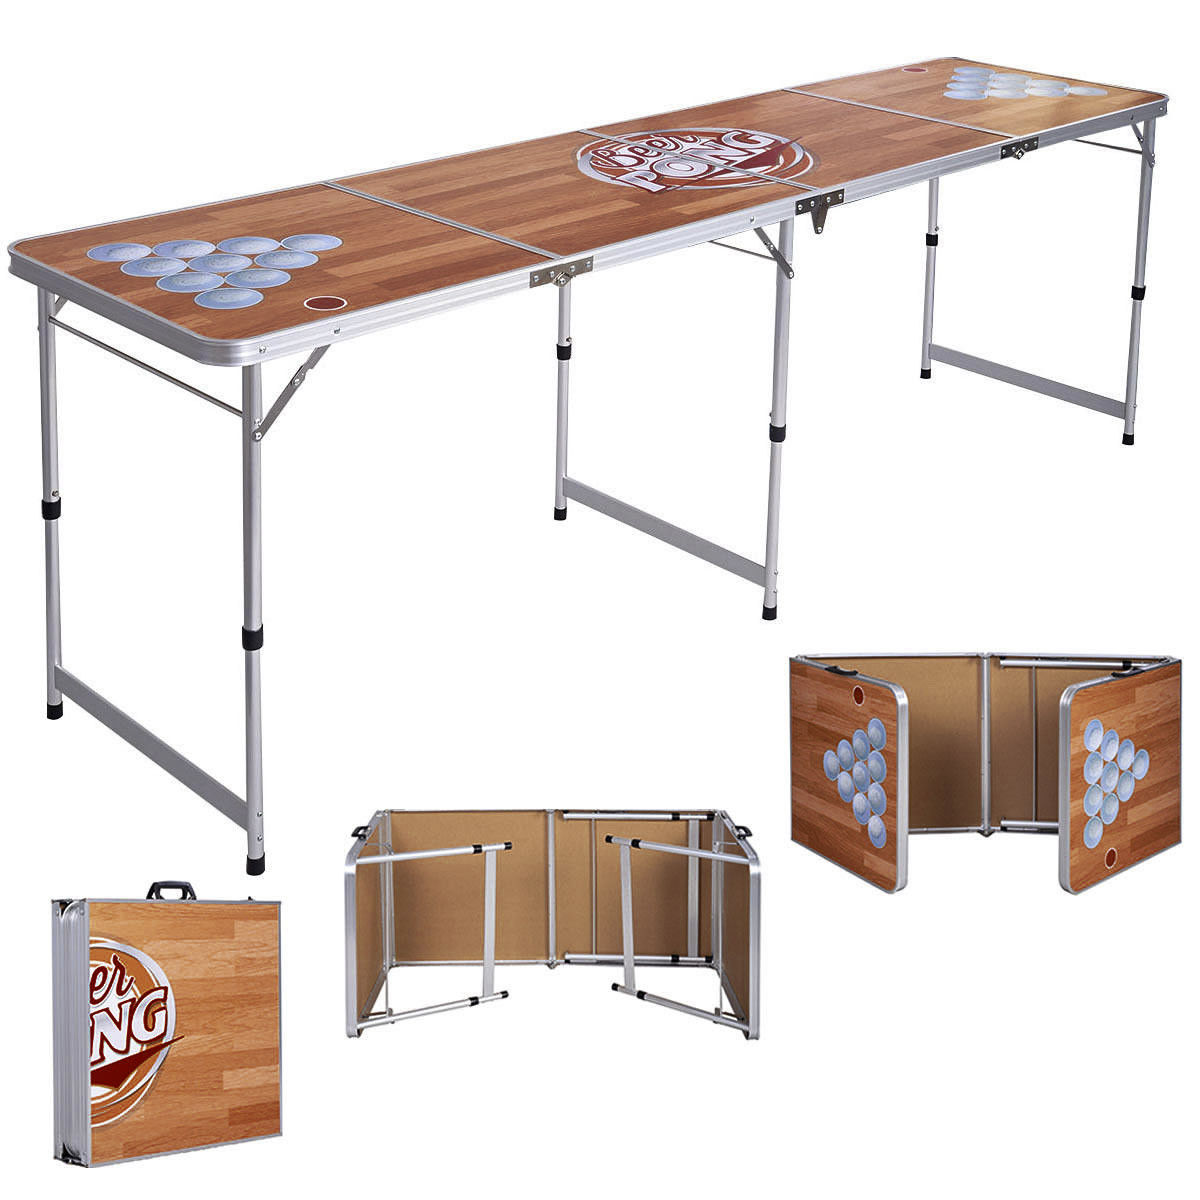 Costway Foldable Aluminum 8' Folding Beer Pong Table Portable Outdoor Indoor Game Party